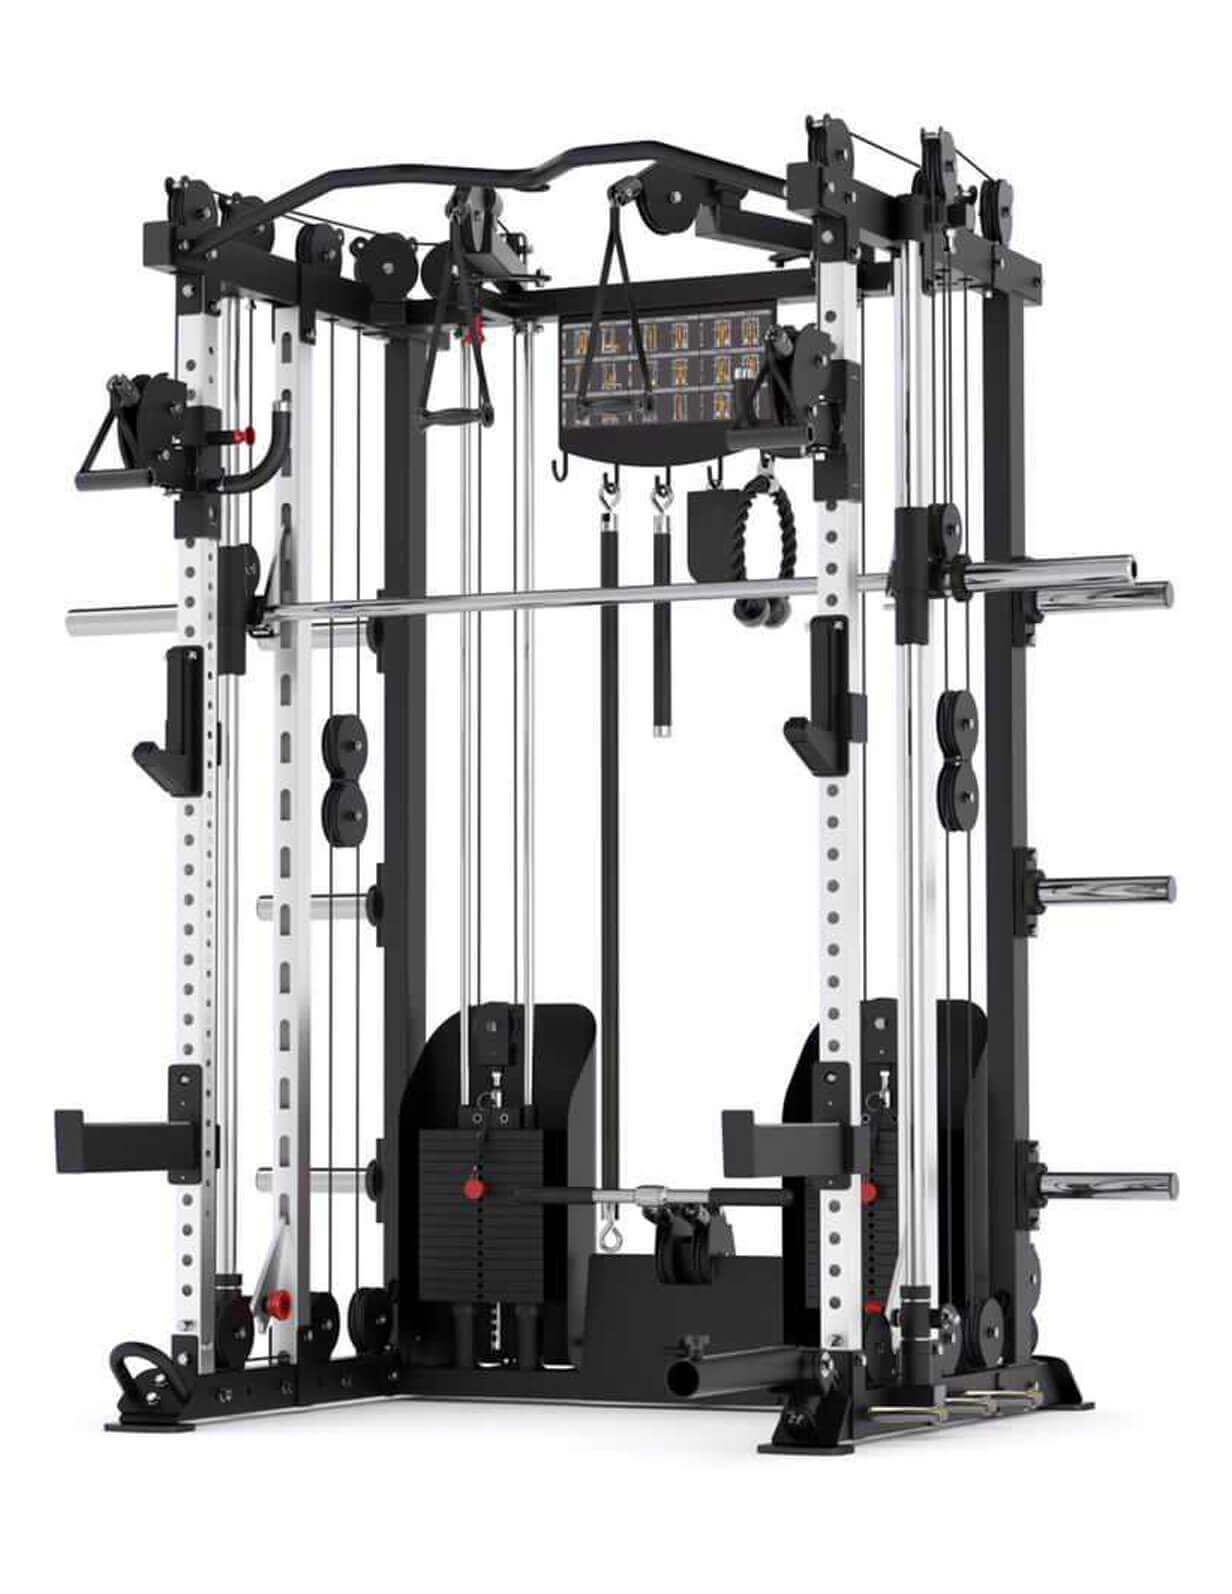 WC-C5 Multigym Smith functional trainer